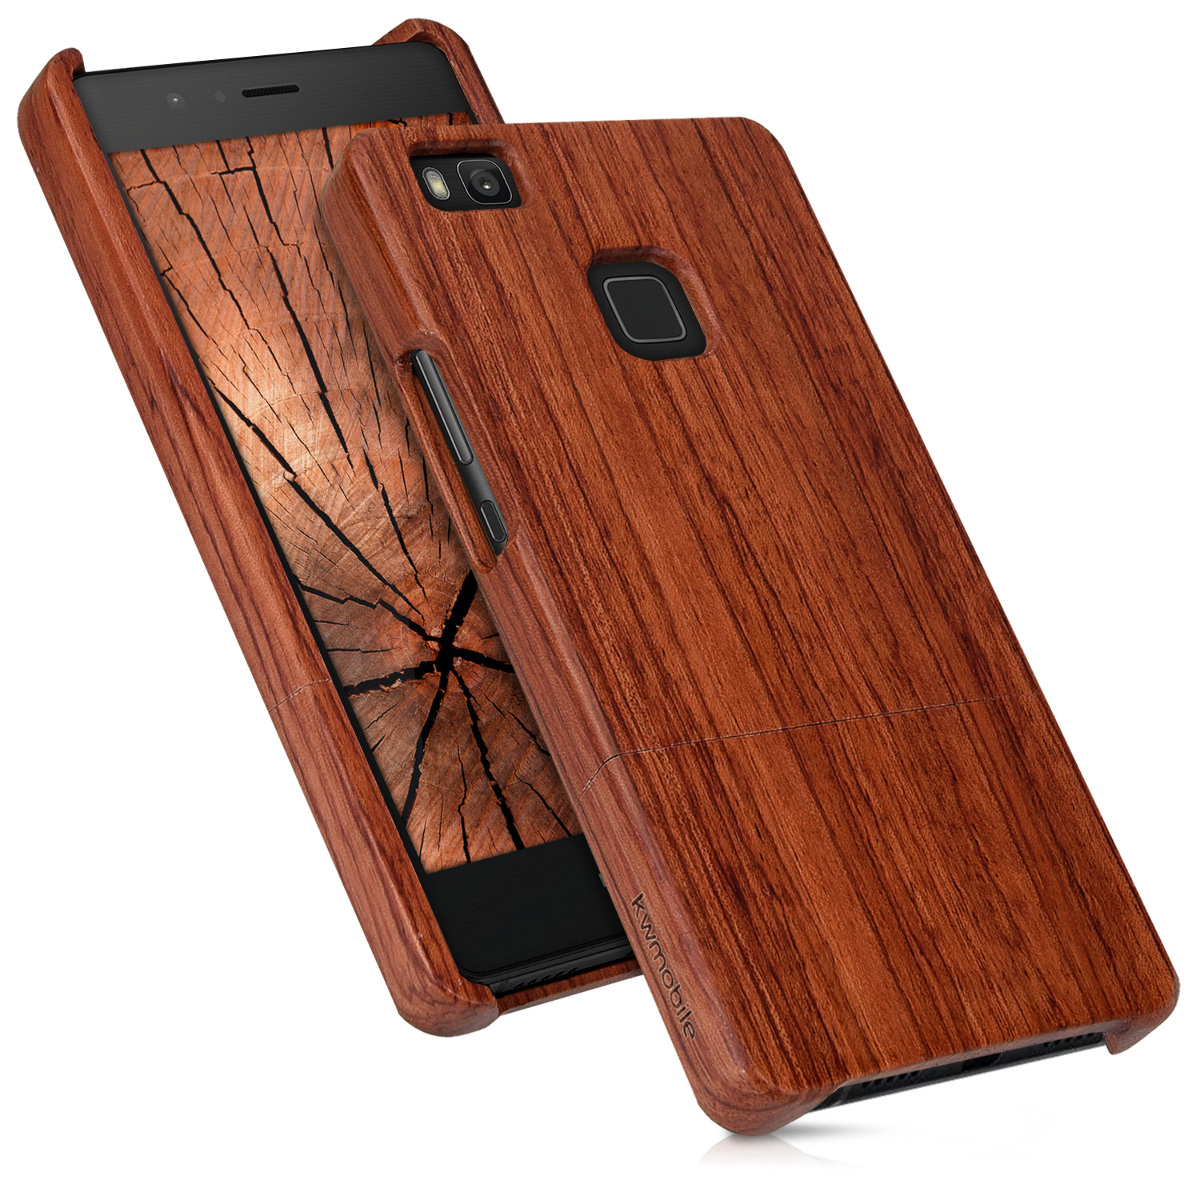 holz schutz h lle f r huawei p9 lite rosenholz natur dunkelbraun hard case cover ebay. Black Bedroom Furniture Sets. Home Design Ideas